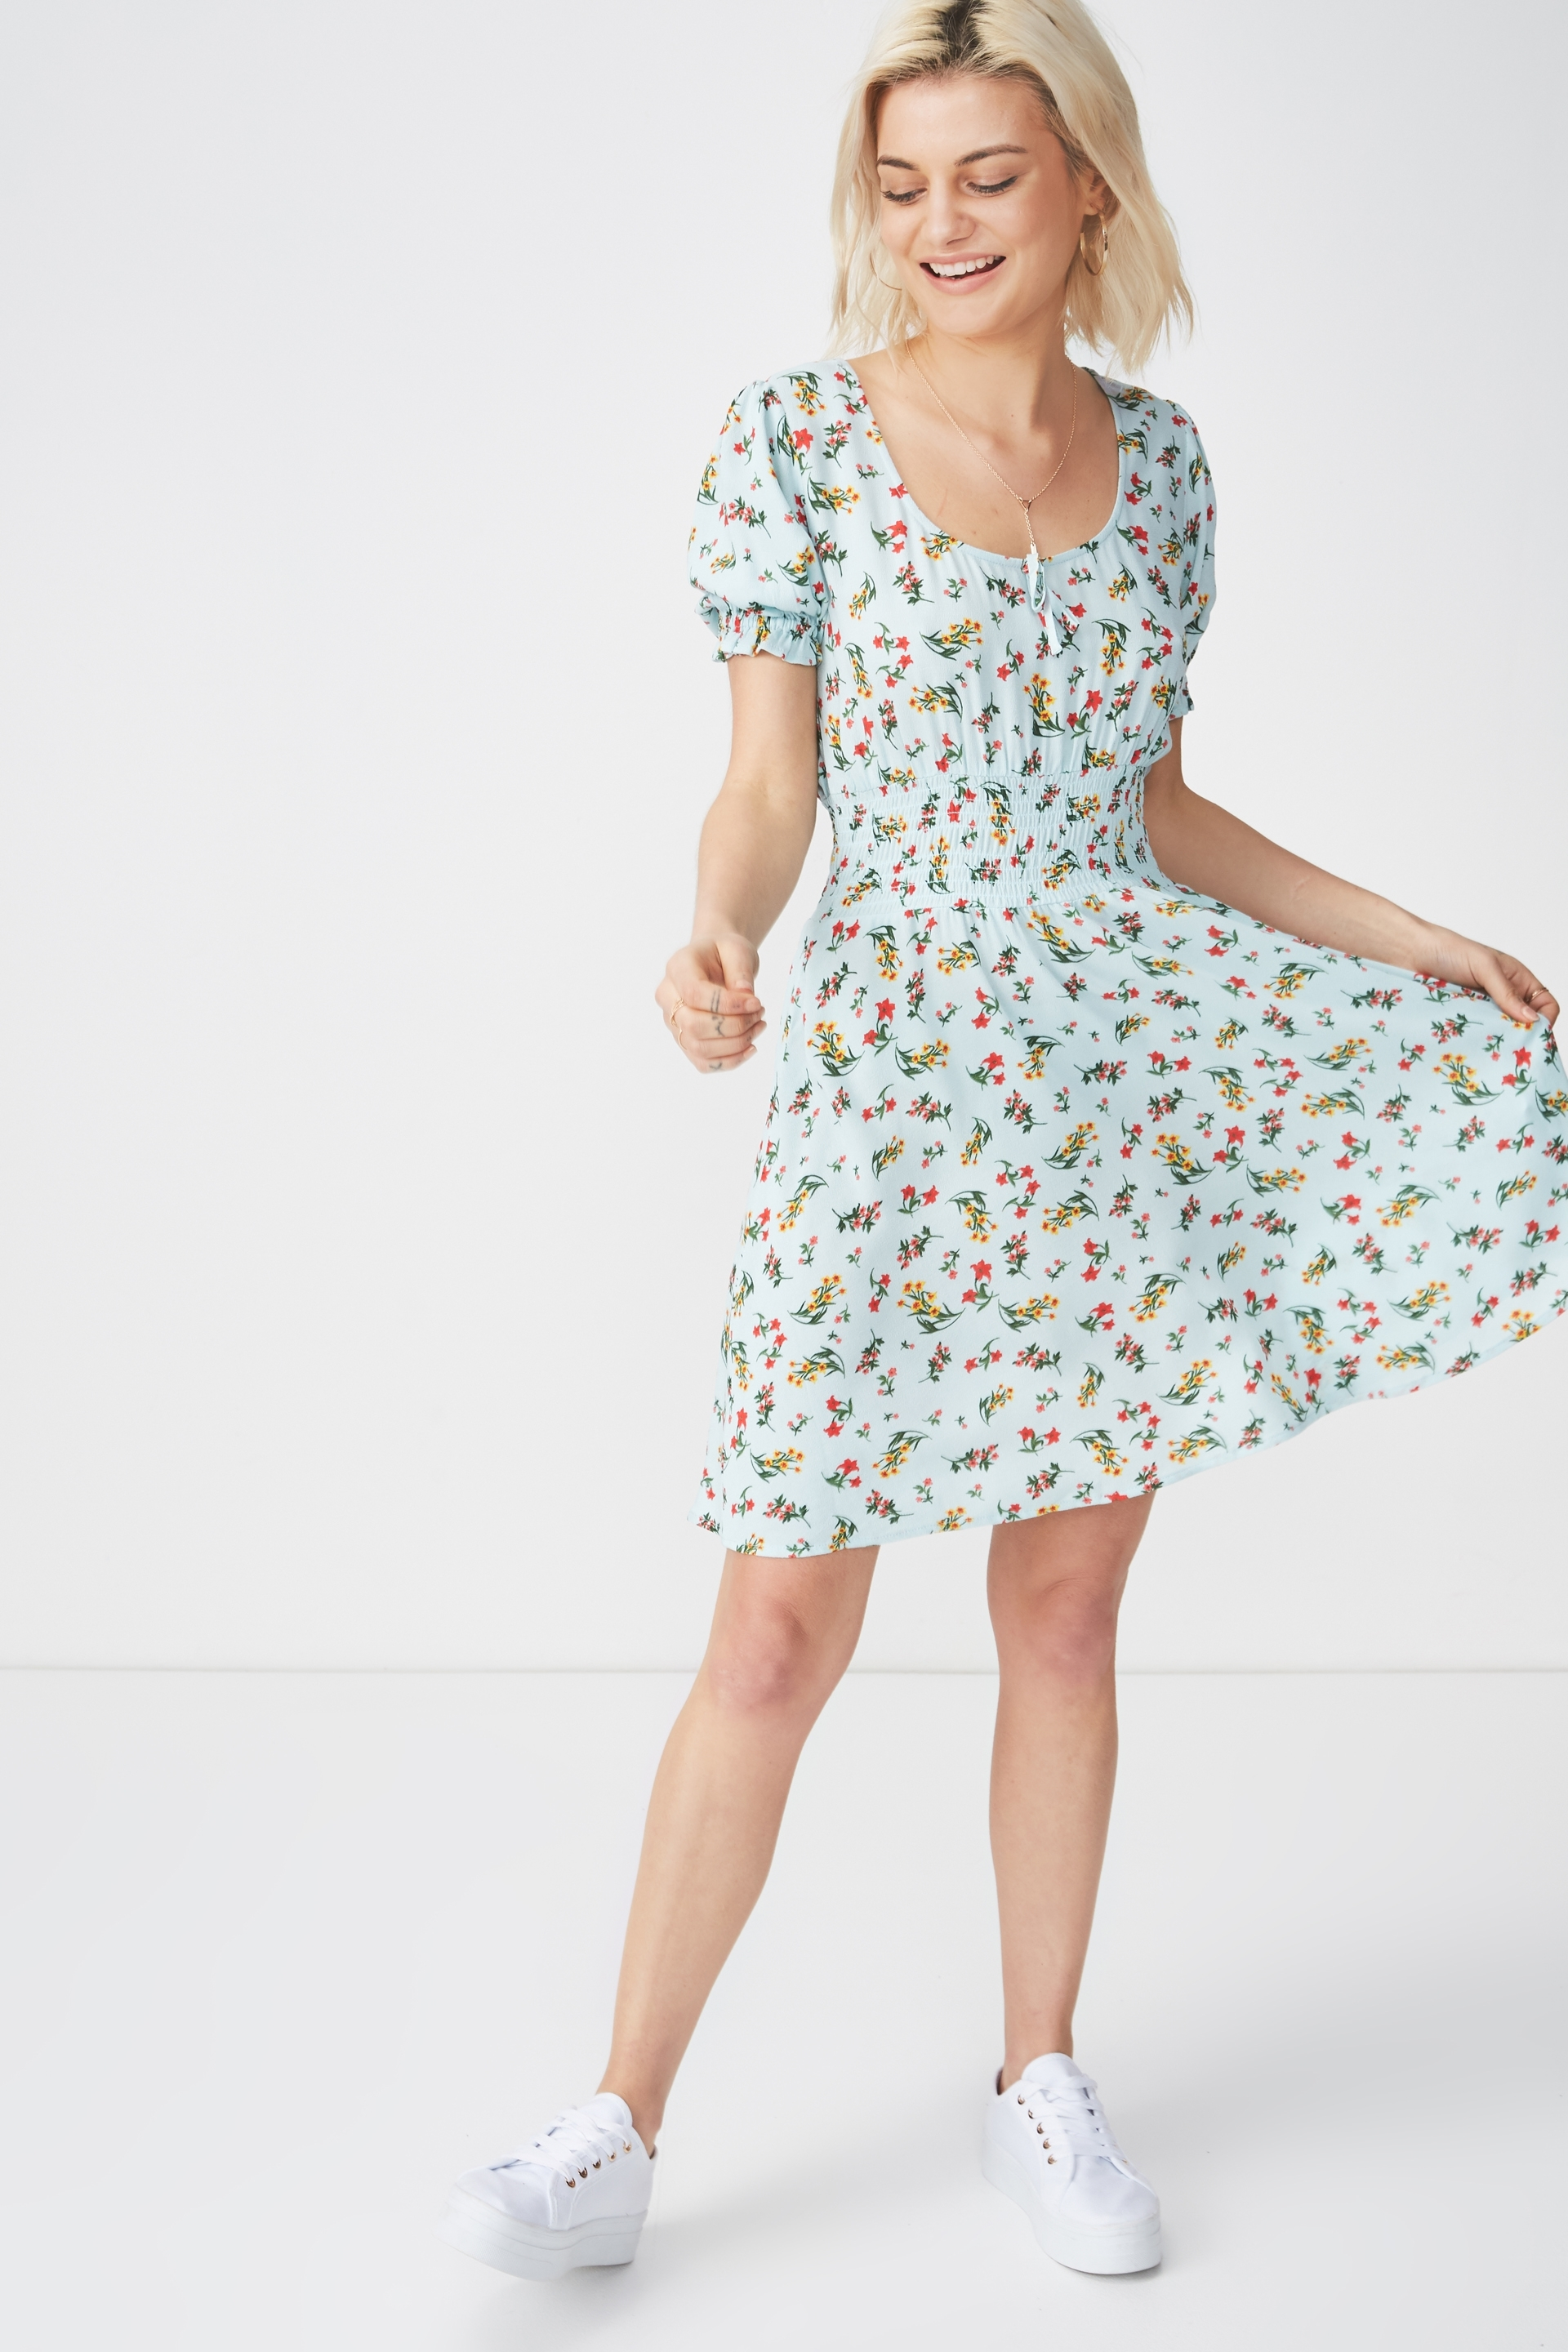 Cotton On Women - Woven Hazel Prairie Cap Sleeve Dress - Melissa floral small pastel blue 9352855617119